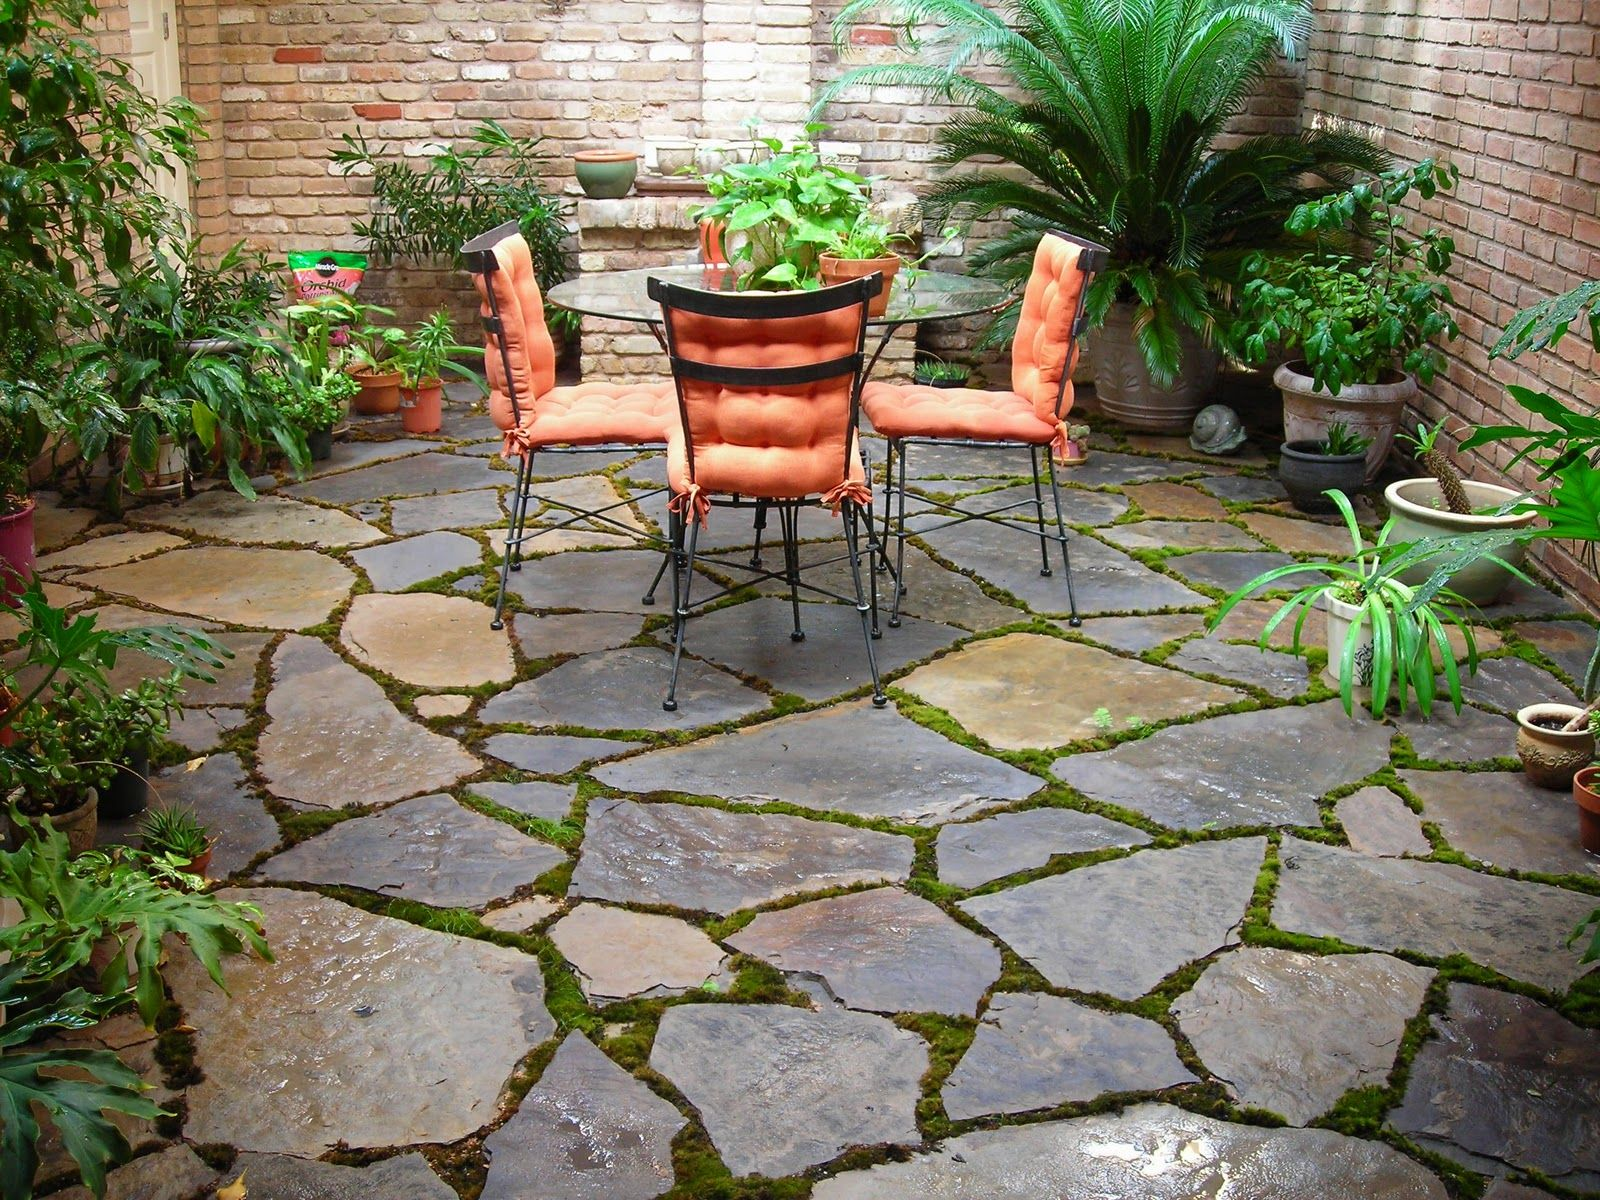 Stone Patio Design Ideas backyard stone patio ideas installing a flagstone patio backyard seating ideas ideas with circled grey paver 20 Best Stone Patio Ideas For Your Backyard